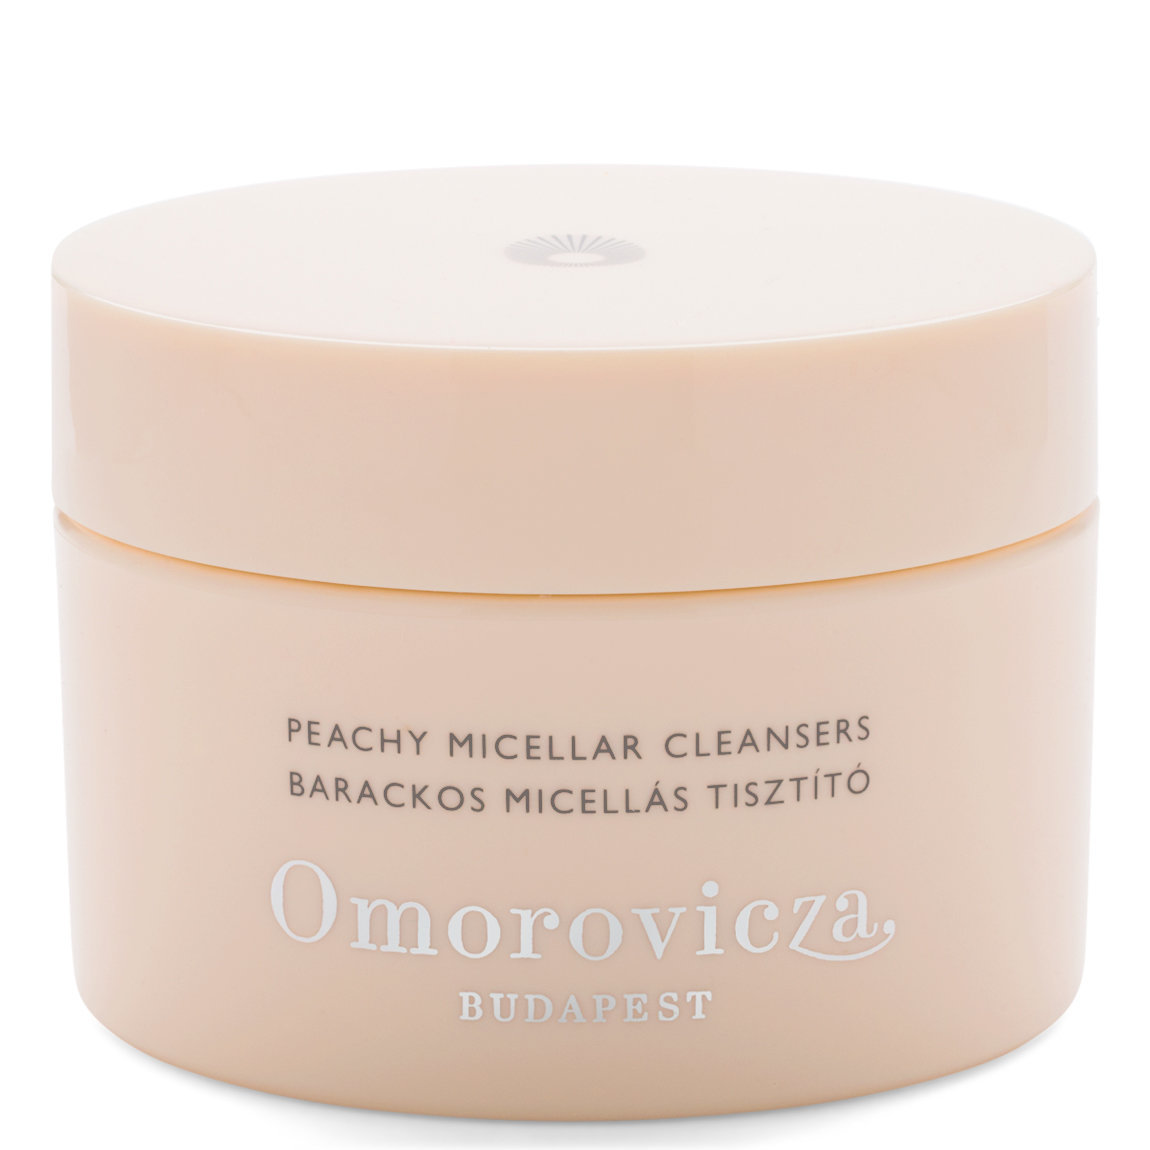 Omorovicza Peachy Micellar Cleansers product swatch.